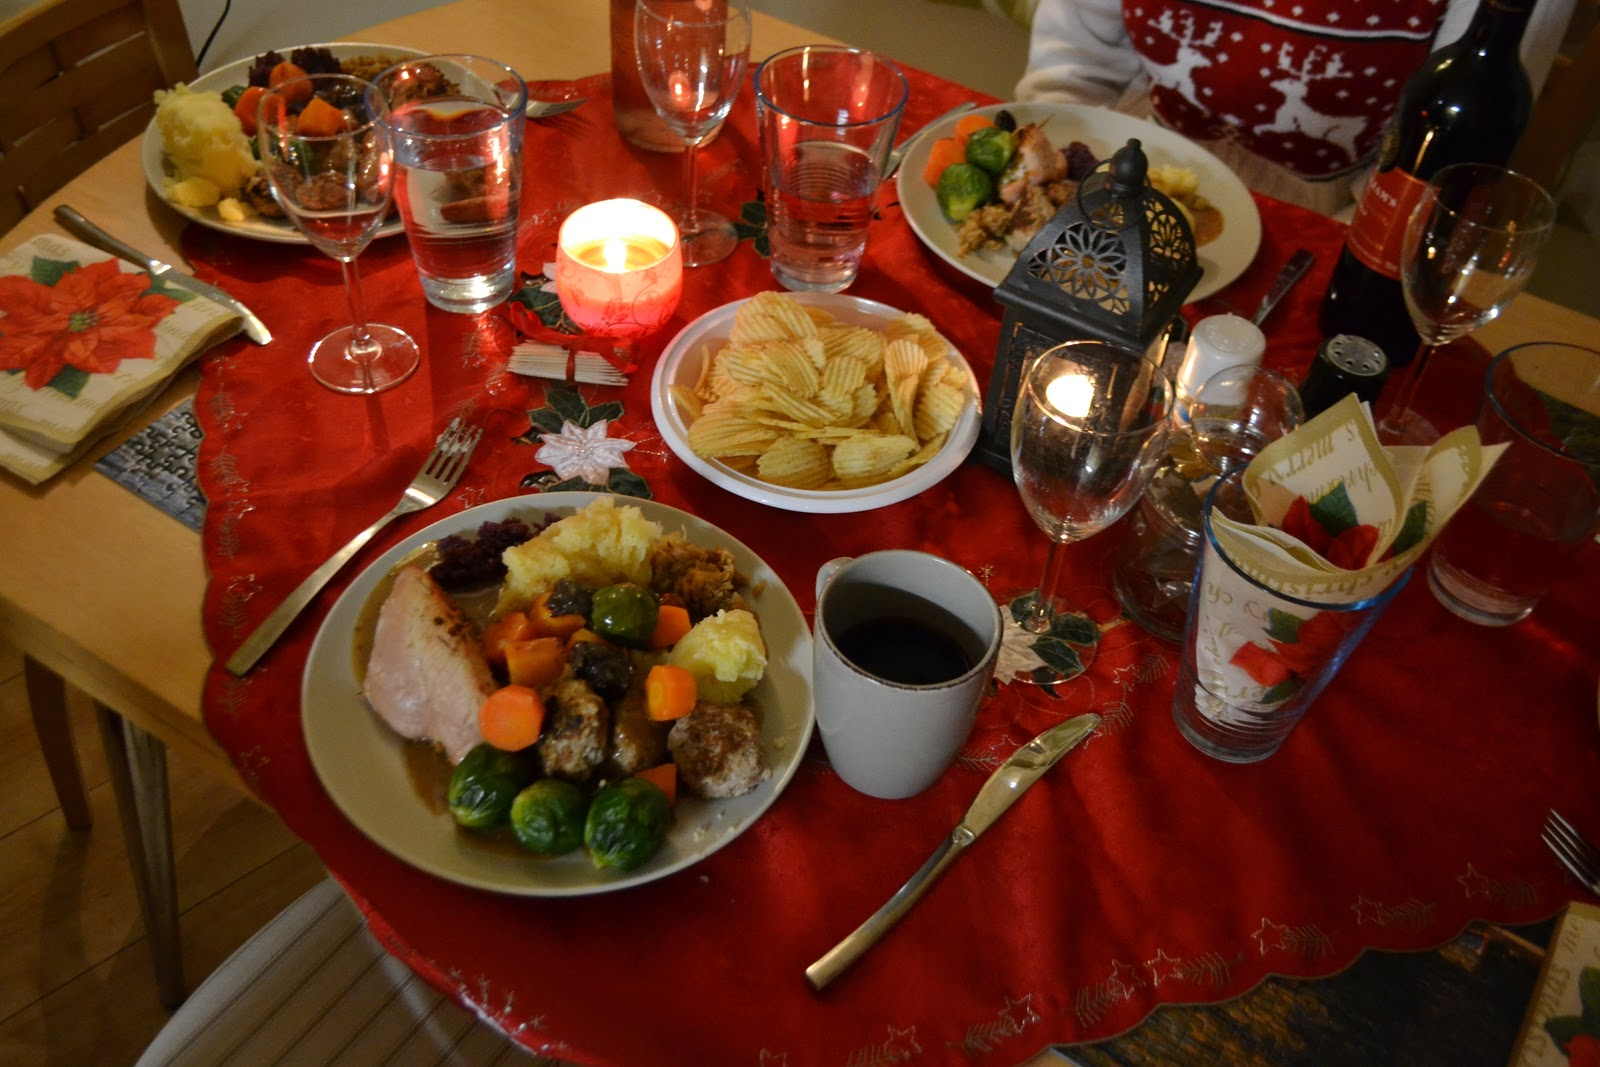 Dinner table with food - Early Nordic Christmas Dinner